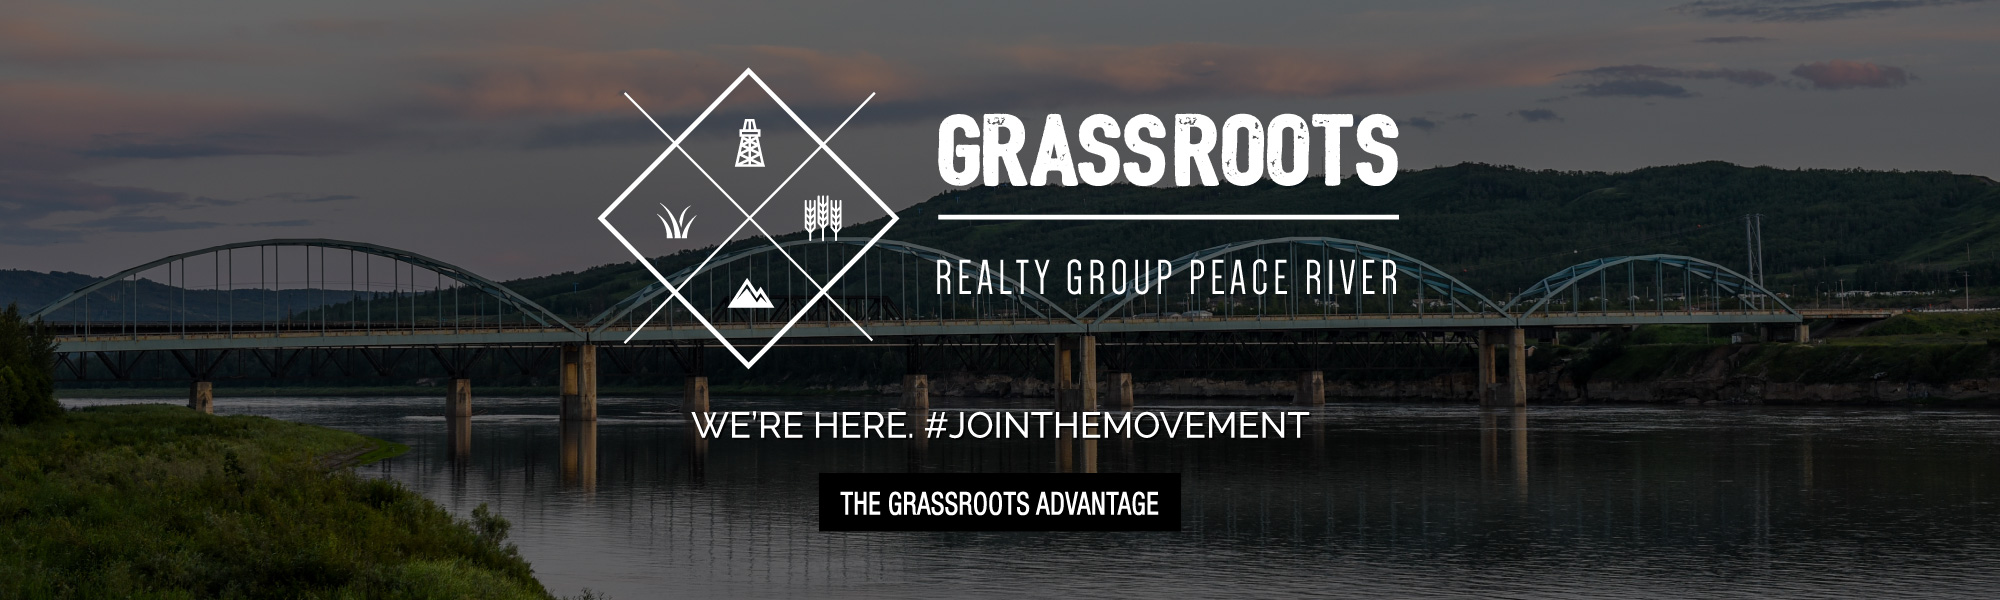 Grassroots Peace River